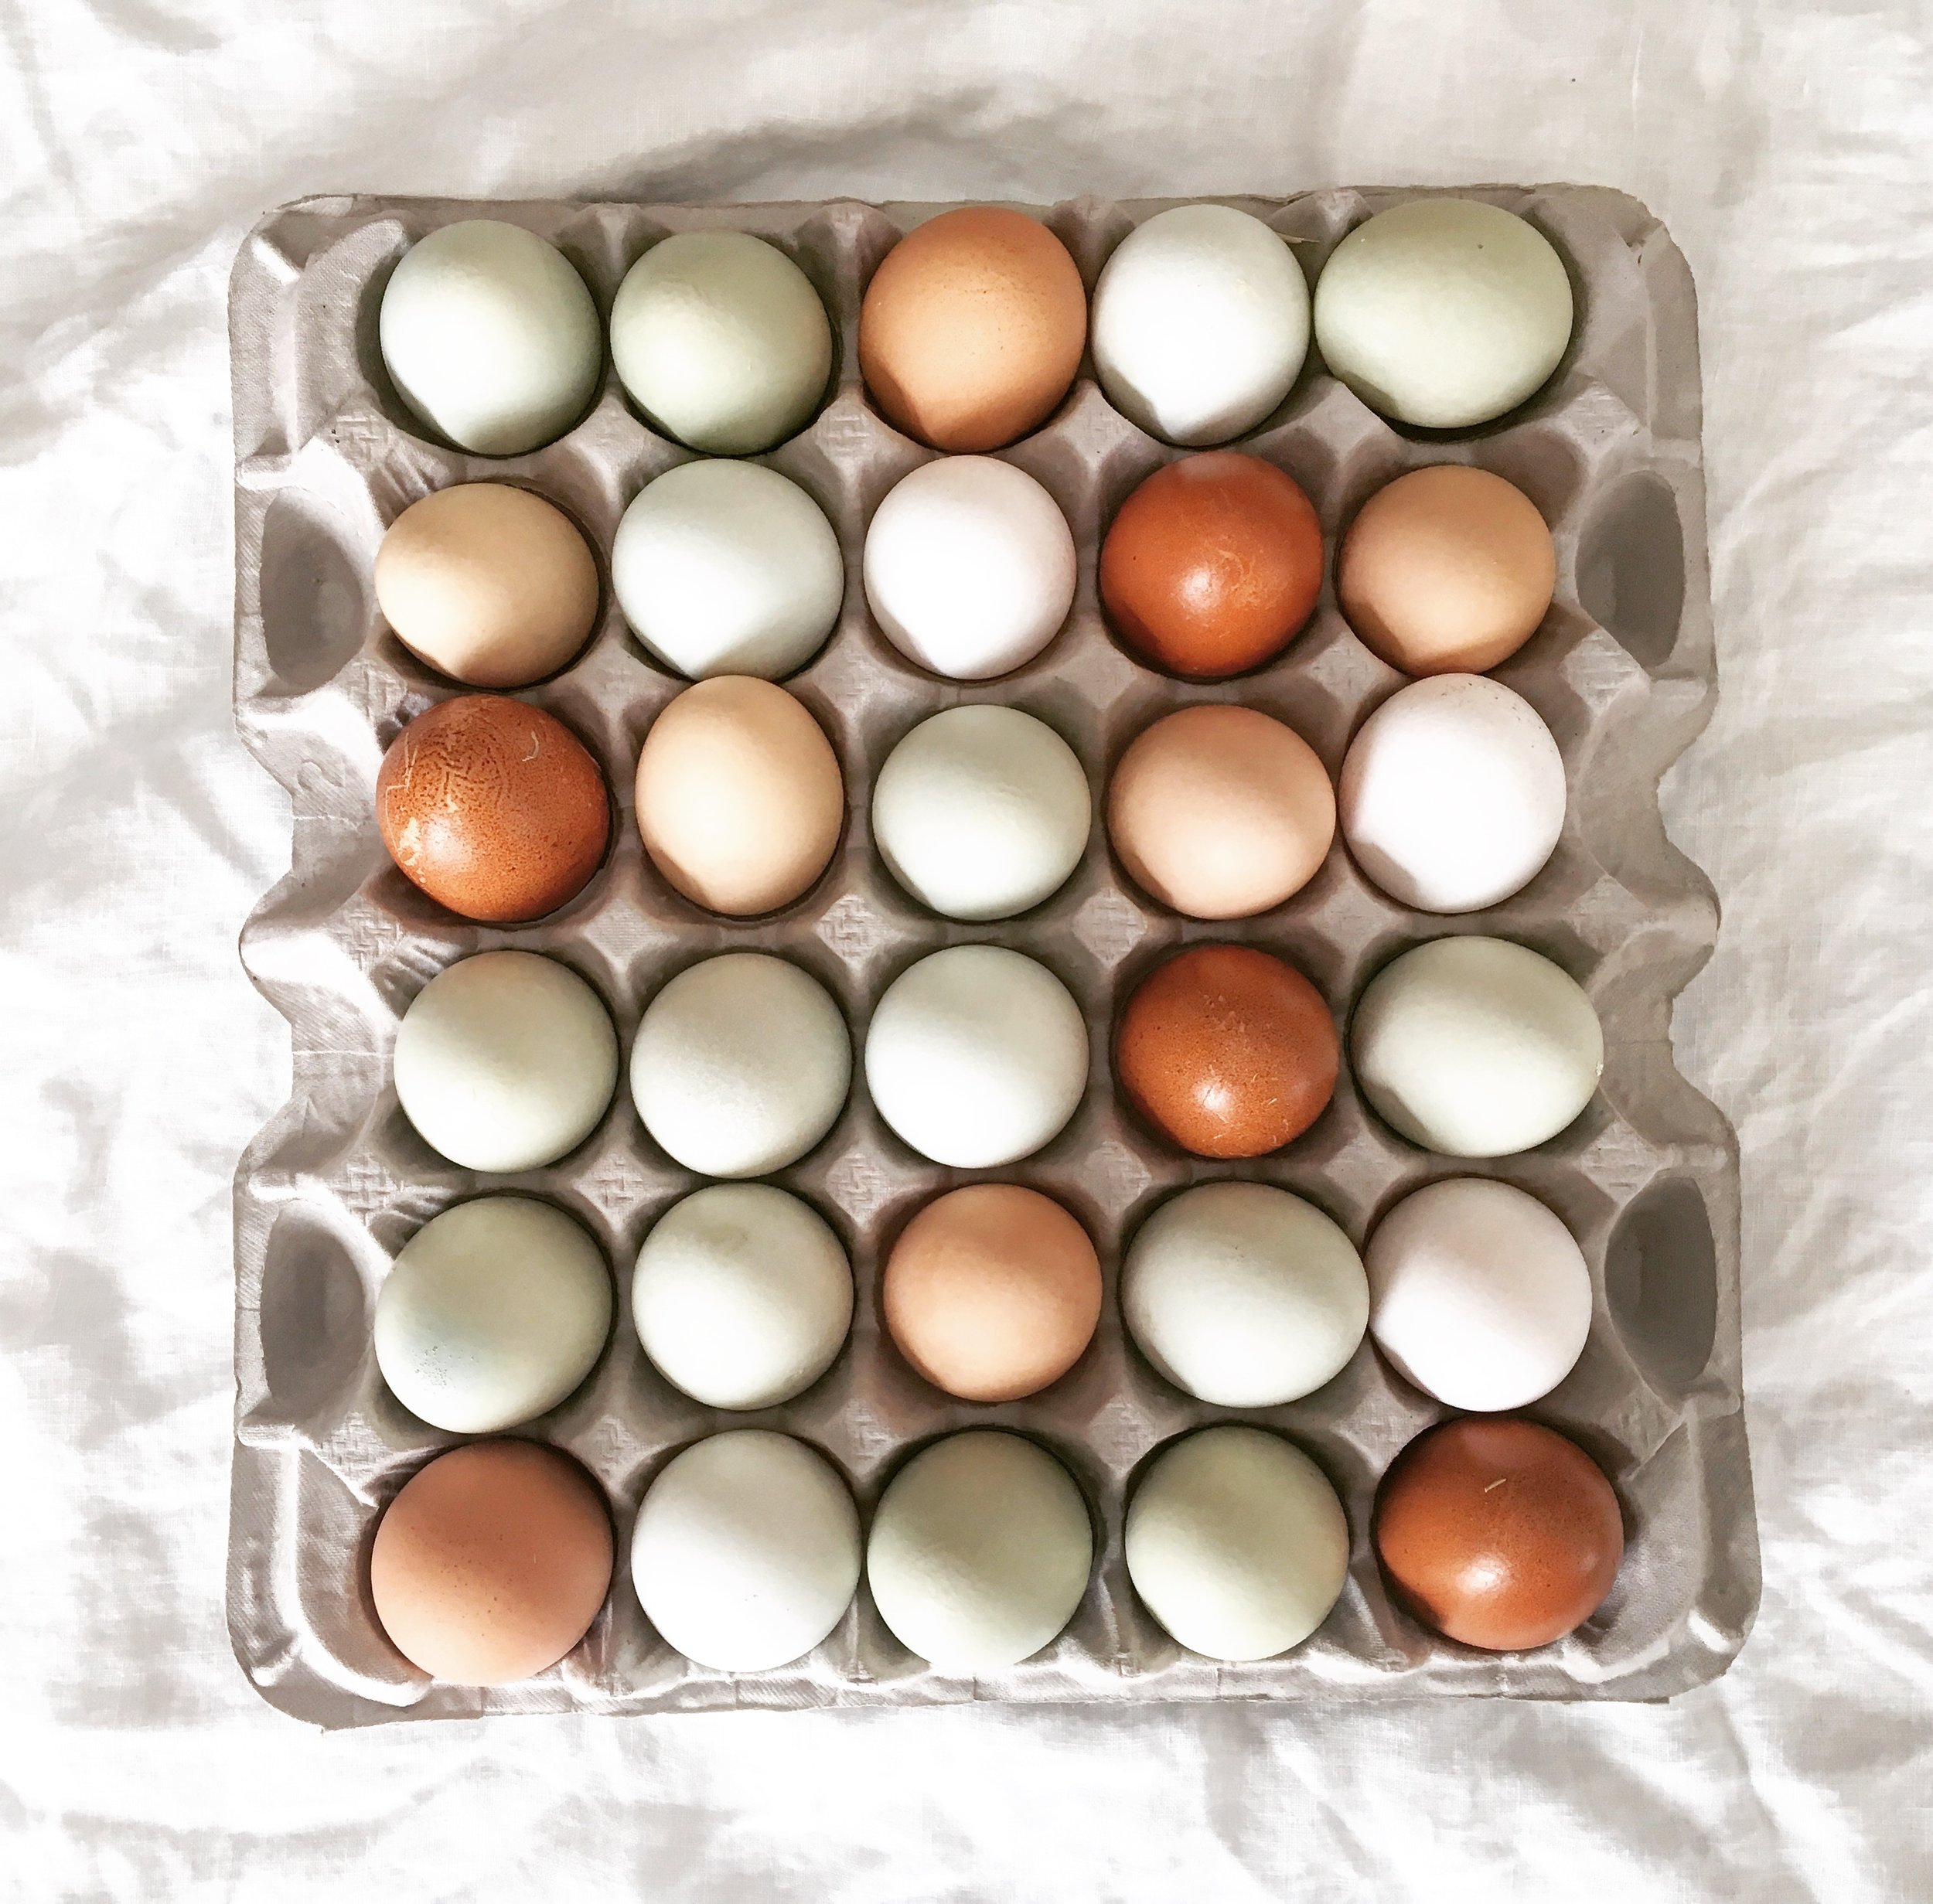 Heirloom eggs from Rachel's hens.